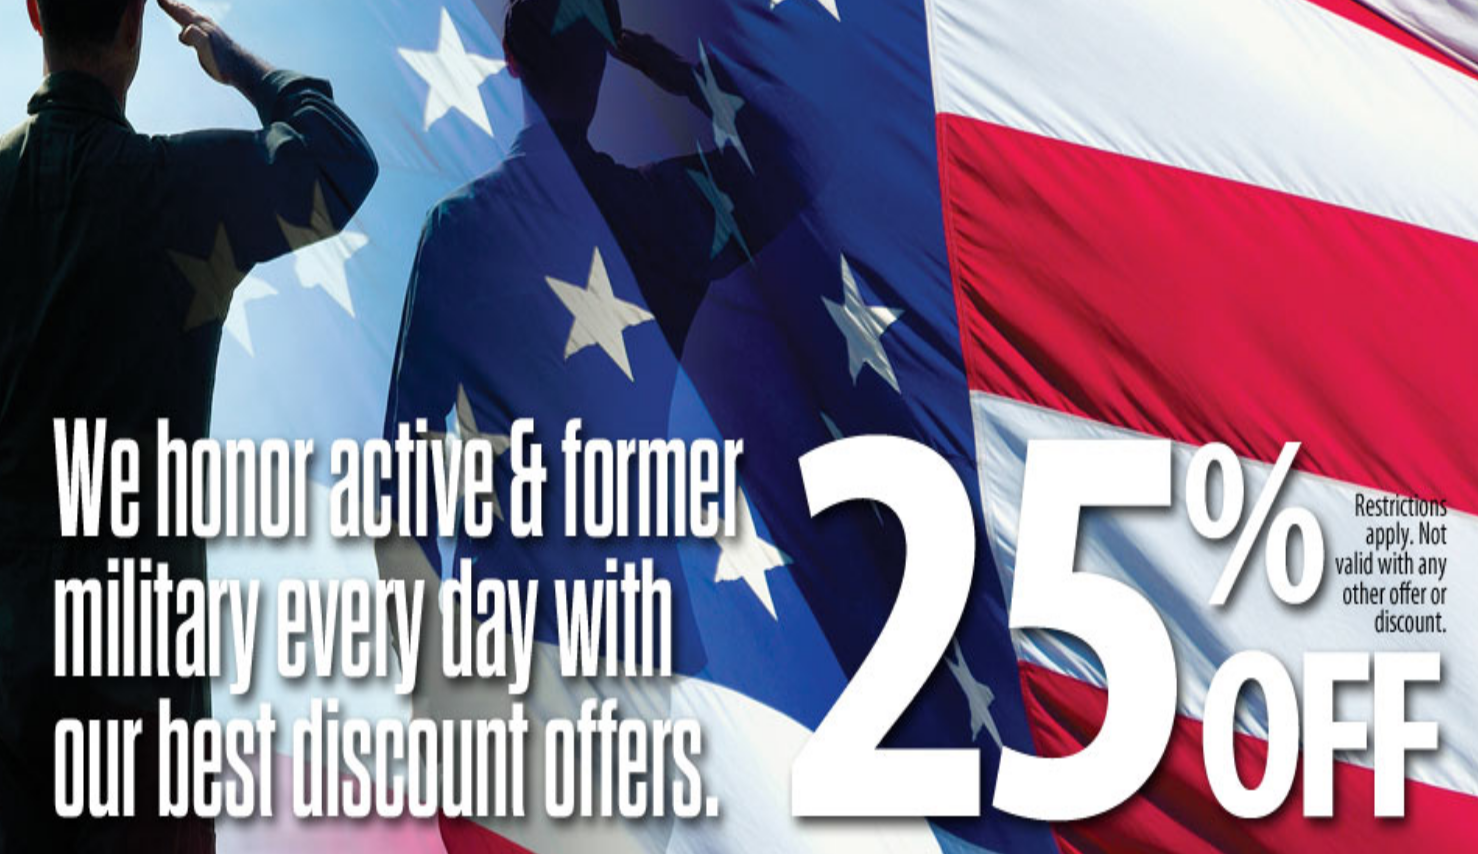 Jiffy Lube Military Veteran Discounts